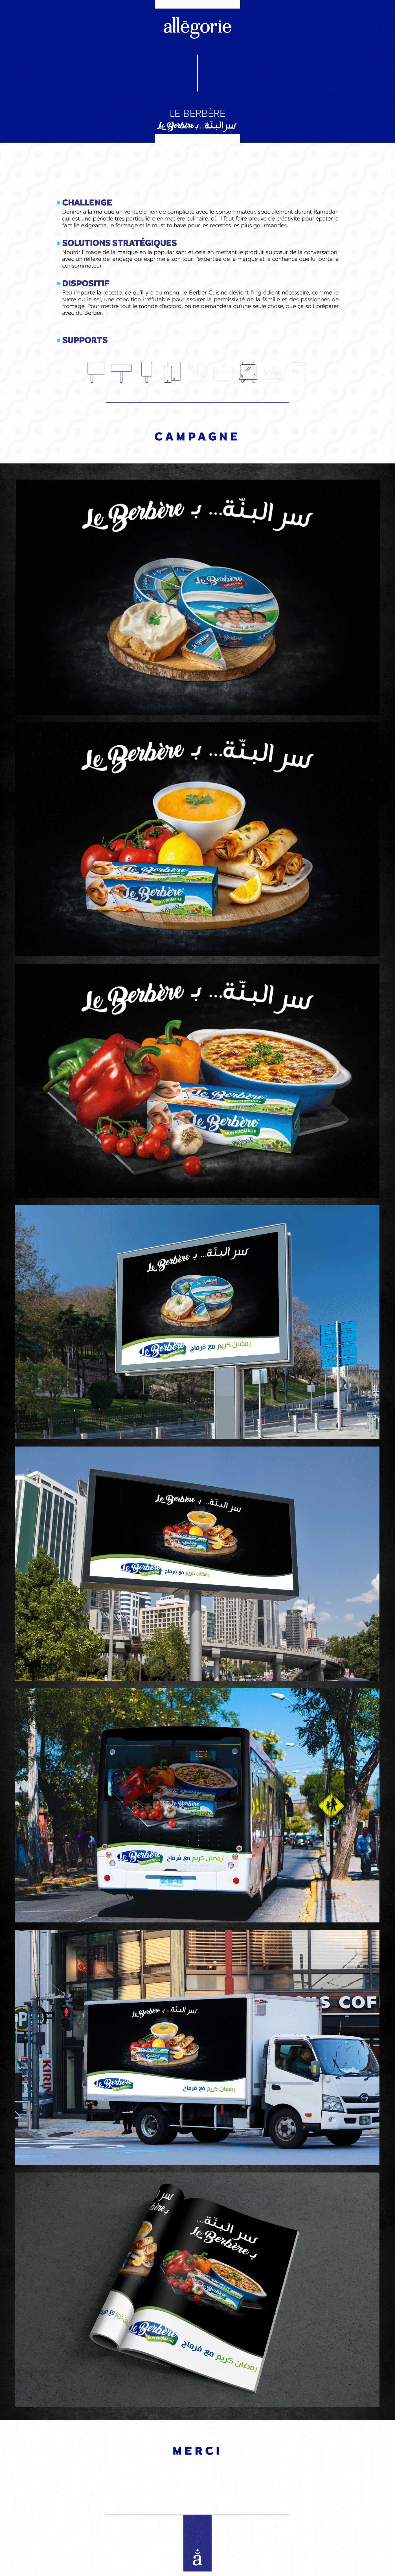 ads affichage commercial photographer print